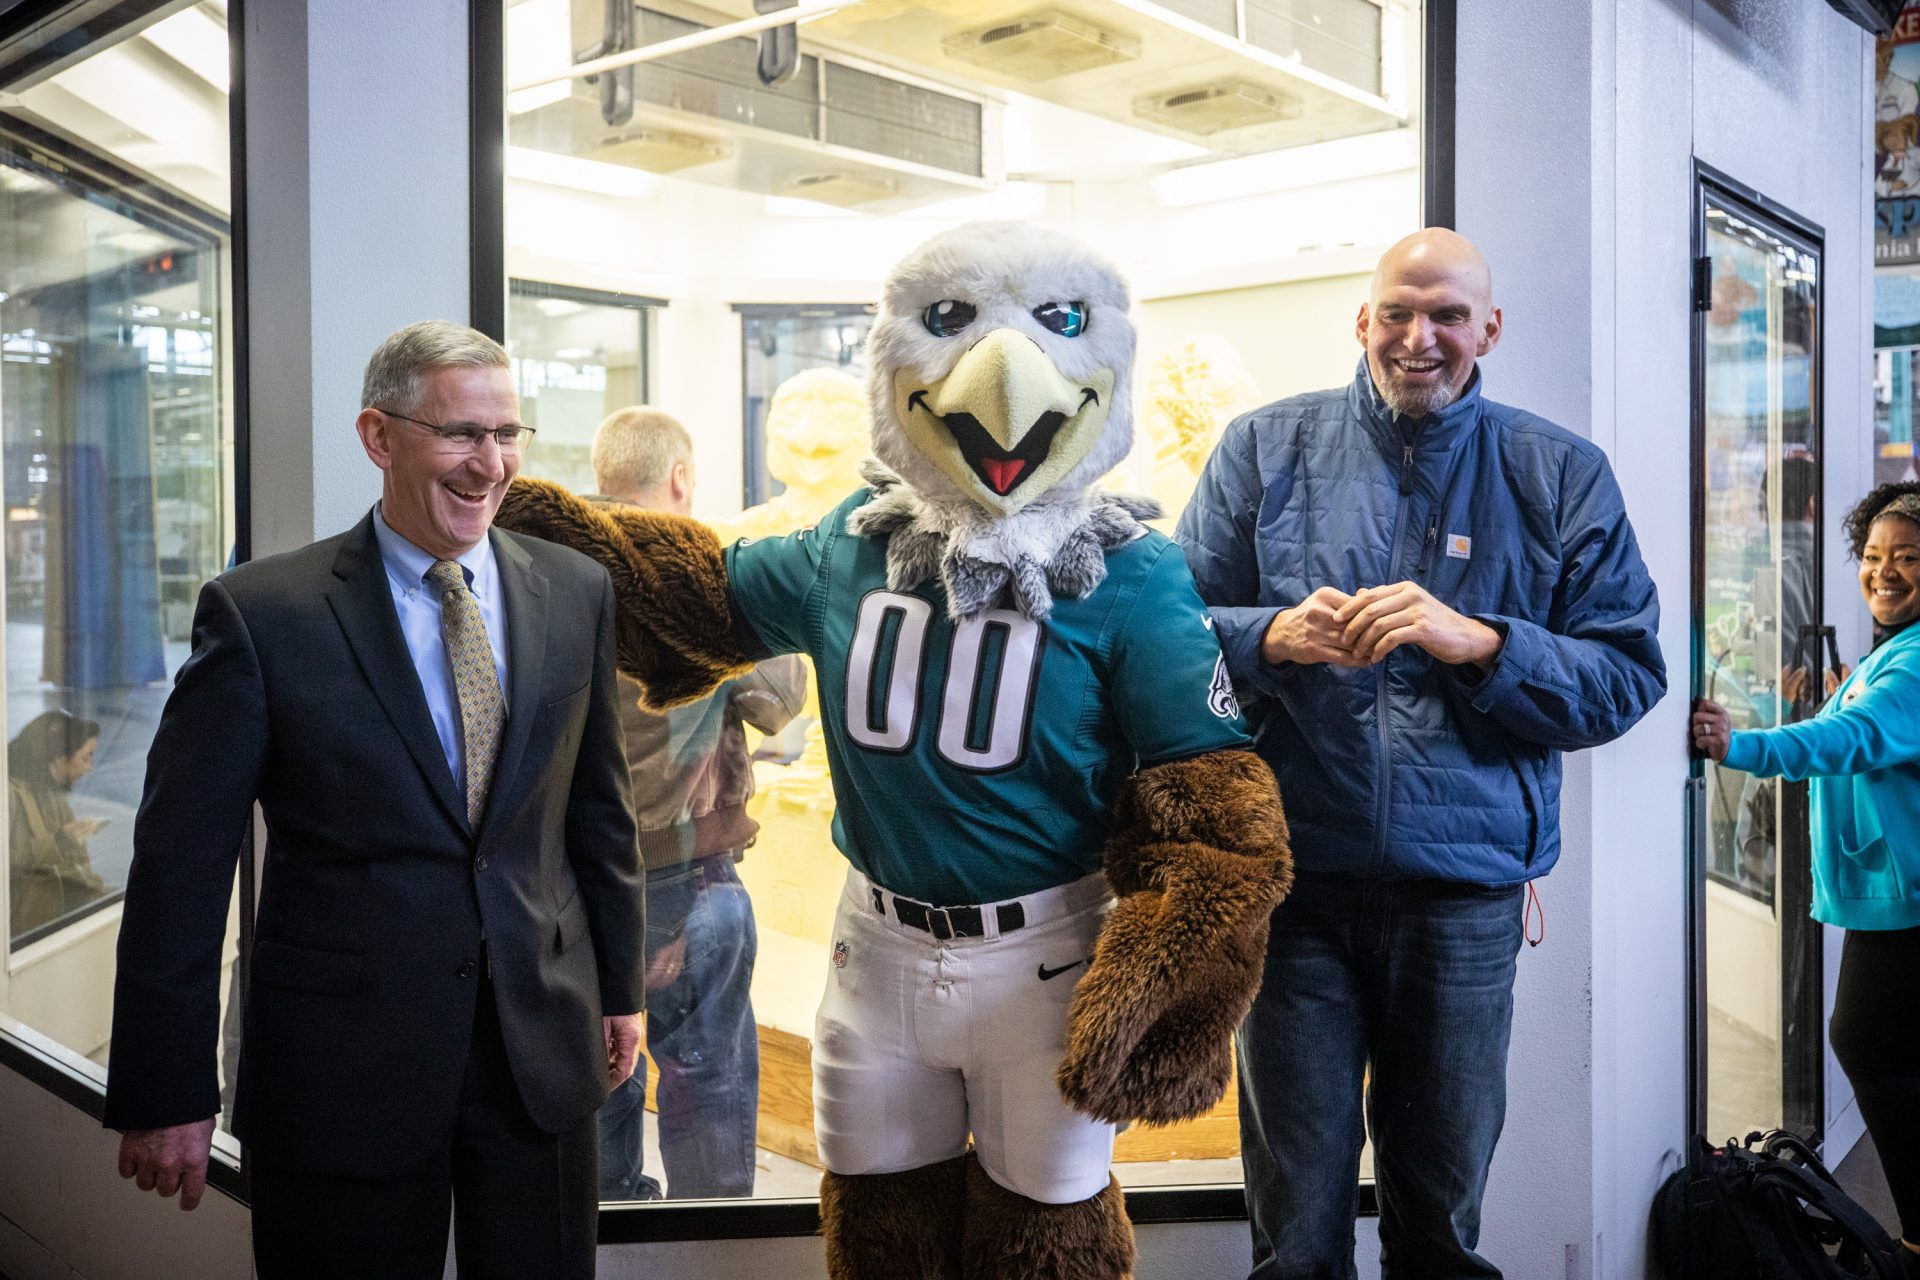 Philadelphia Eagles' Swoop poses for a photos with Secretary of Agriculture Russell Redding (left) and Lt. Gov. John Fetterman after the unveiling of the 2020 Pennsylvania Farm Show butter sculpture.